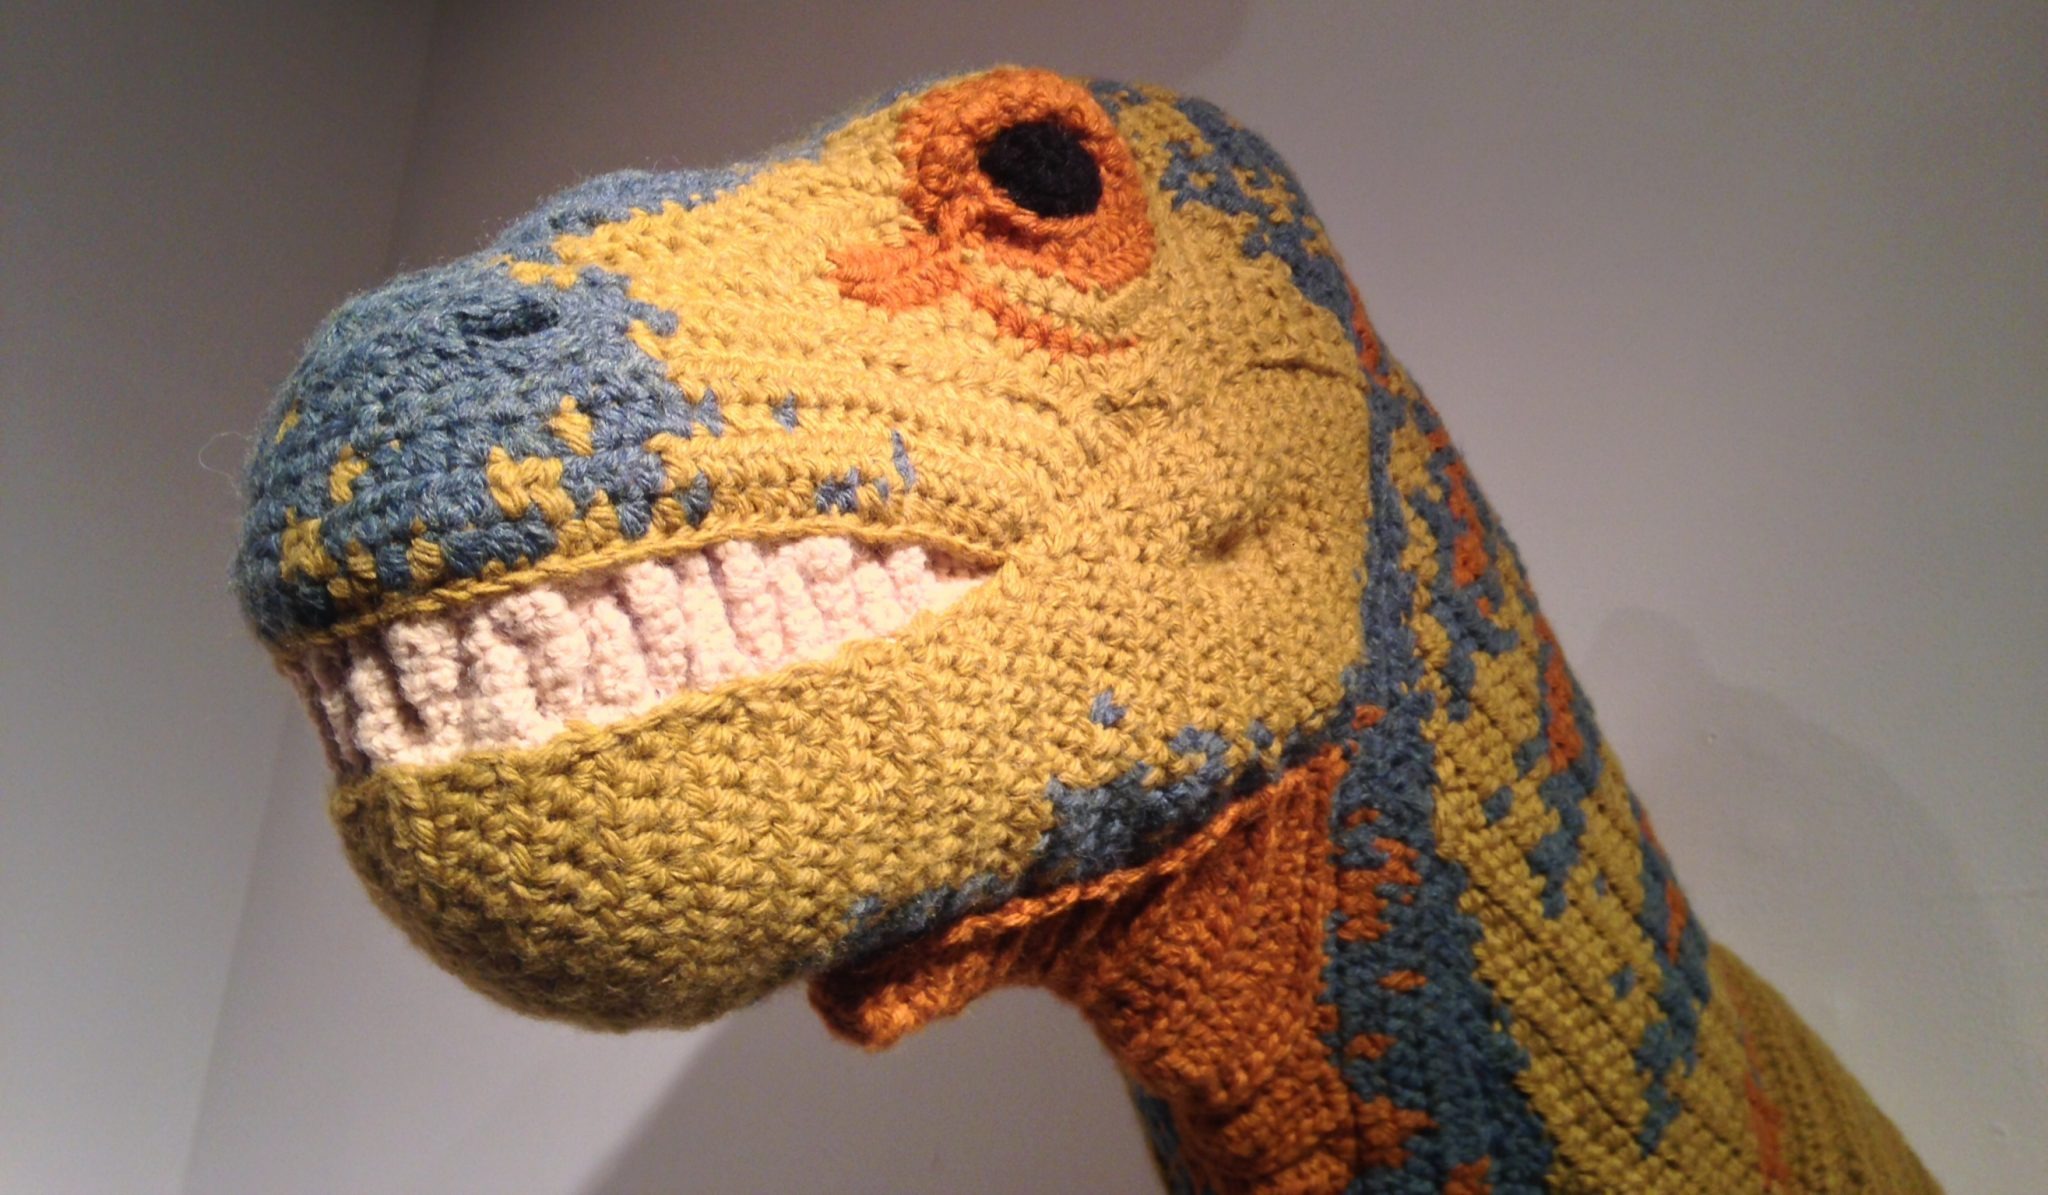 Crochet : ... of some of the work from prolific male crochet artist Nathan Vincent